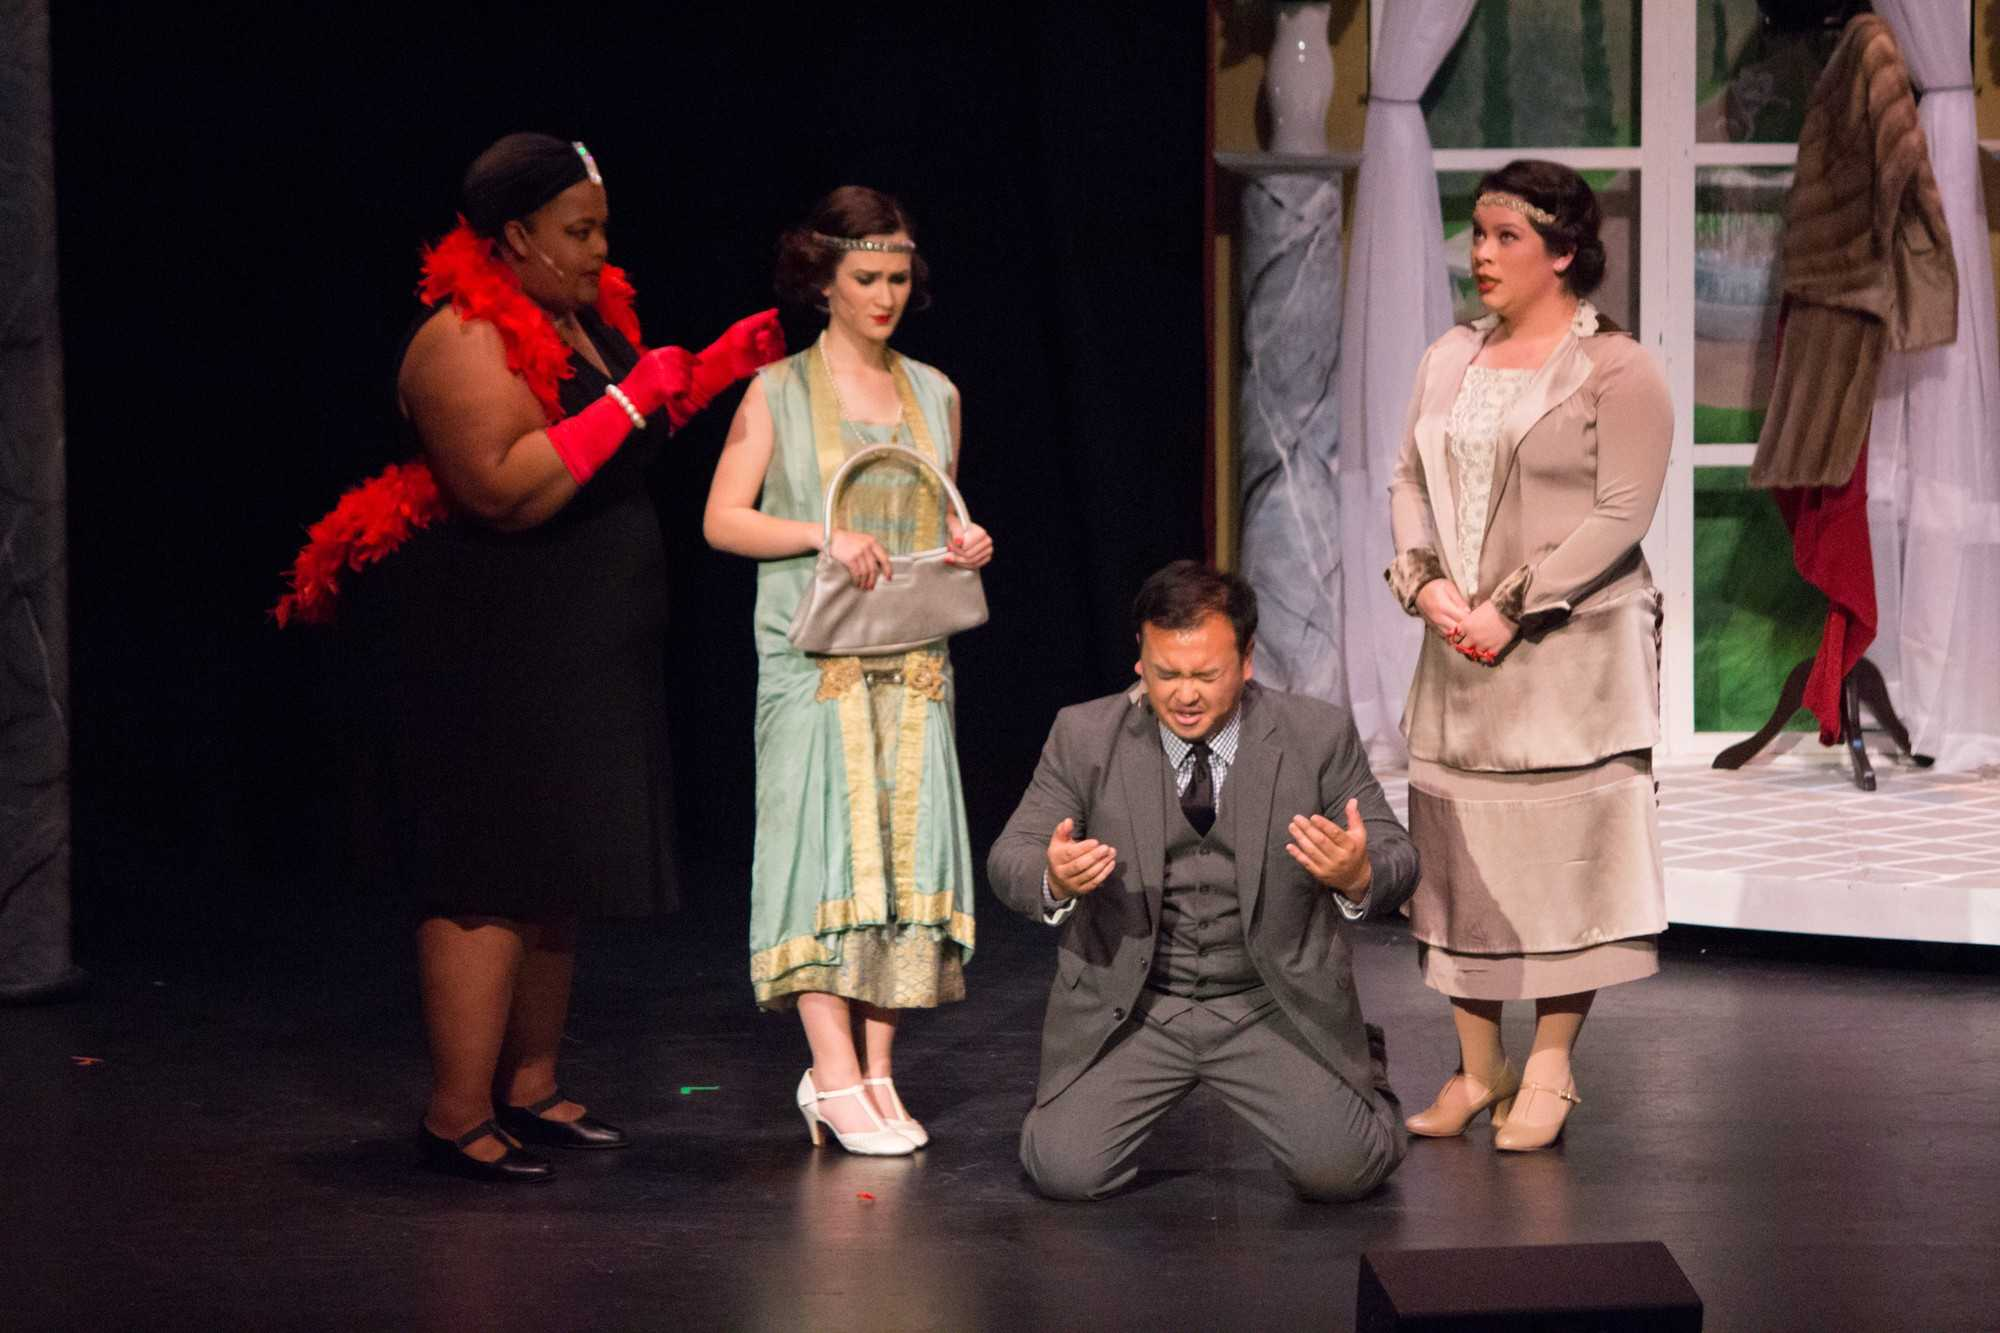 (Left to Right) April Bracy, Danielle Rideau, Kevin Valera and Jalayna Schneider in Skyline College's Spring Musical, The Drowsy Chaperone on Friday, April 22, 2016.